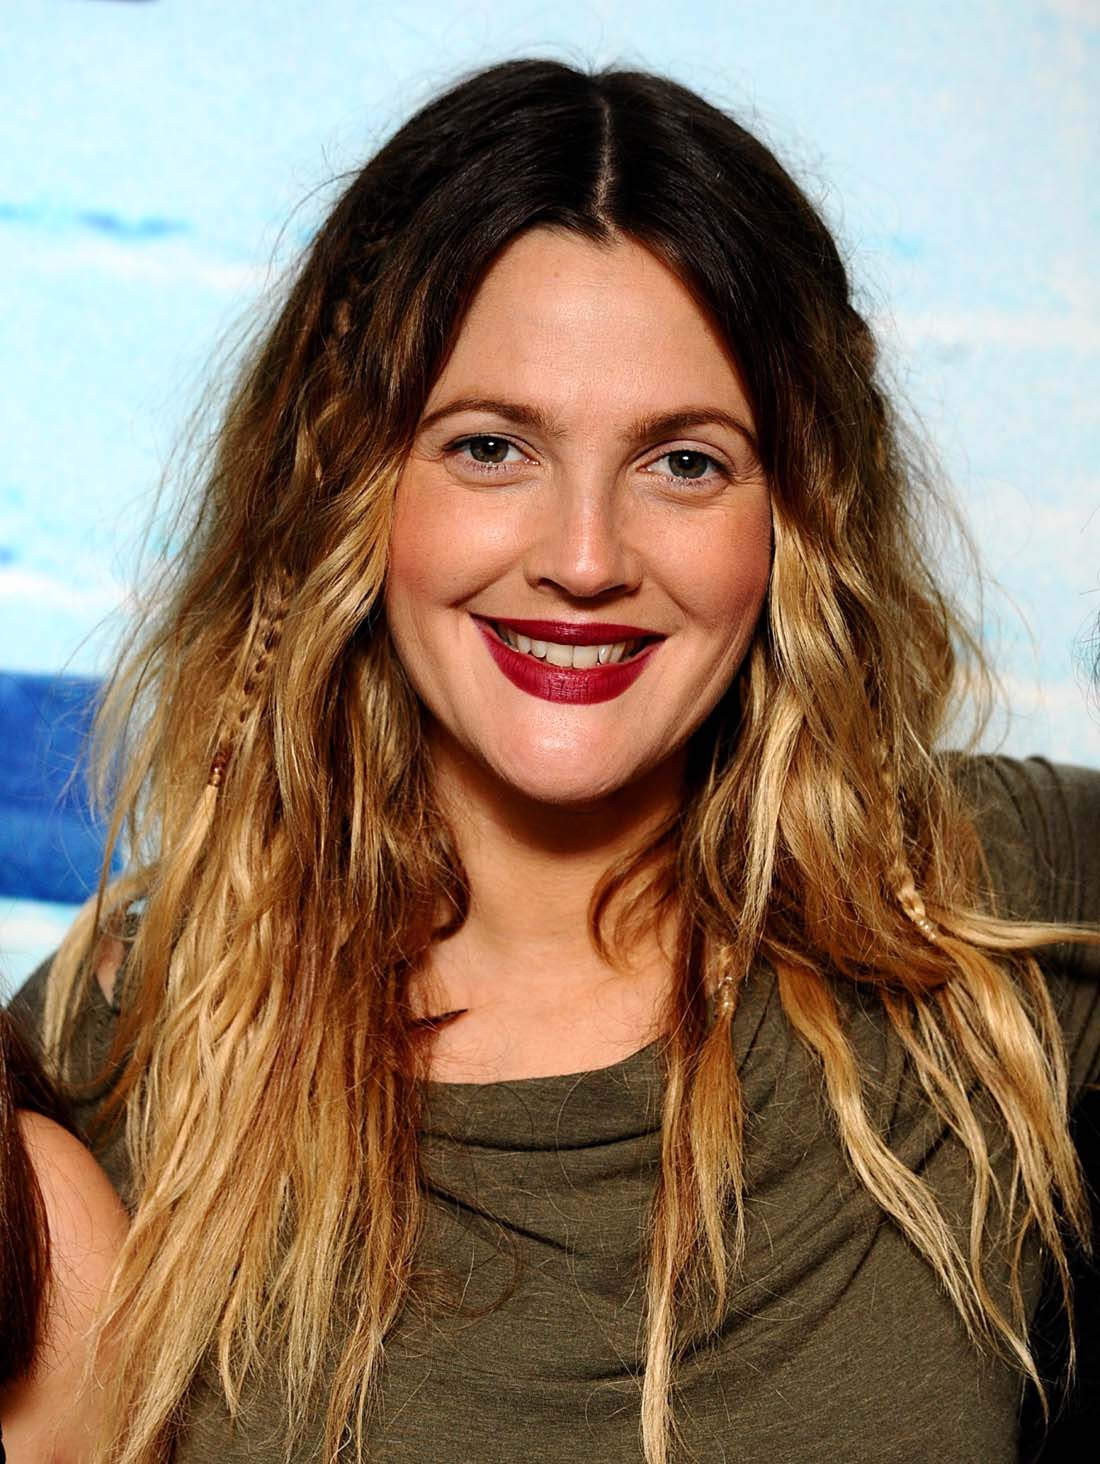 Drew Barrymore Photo Gallery Showcase Sheclick Com